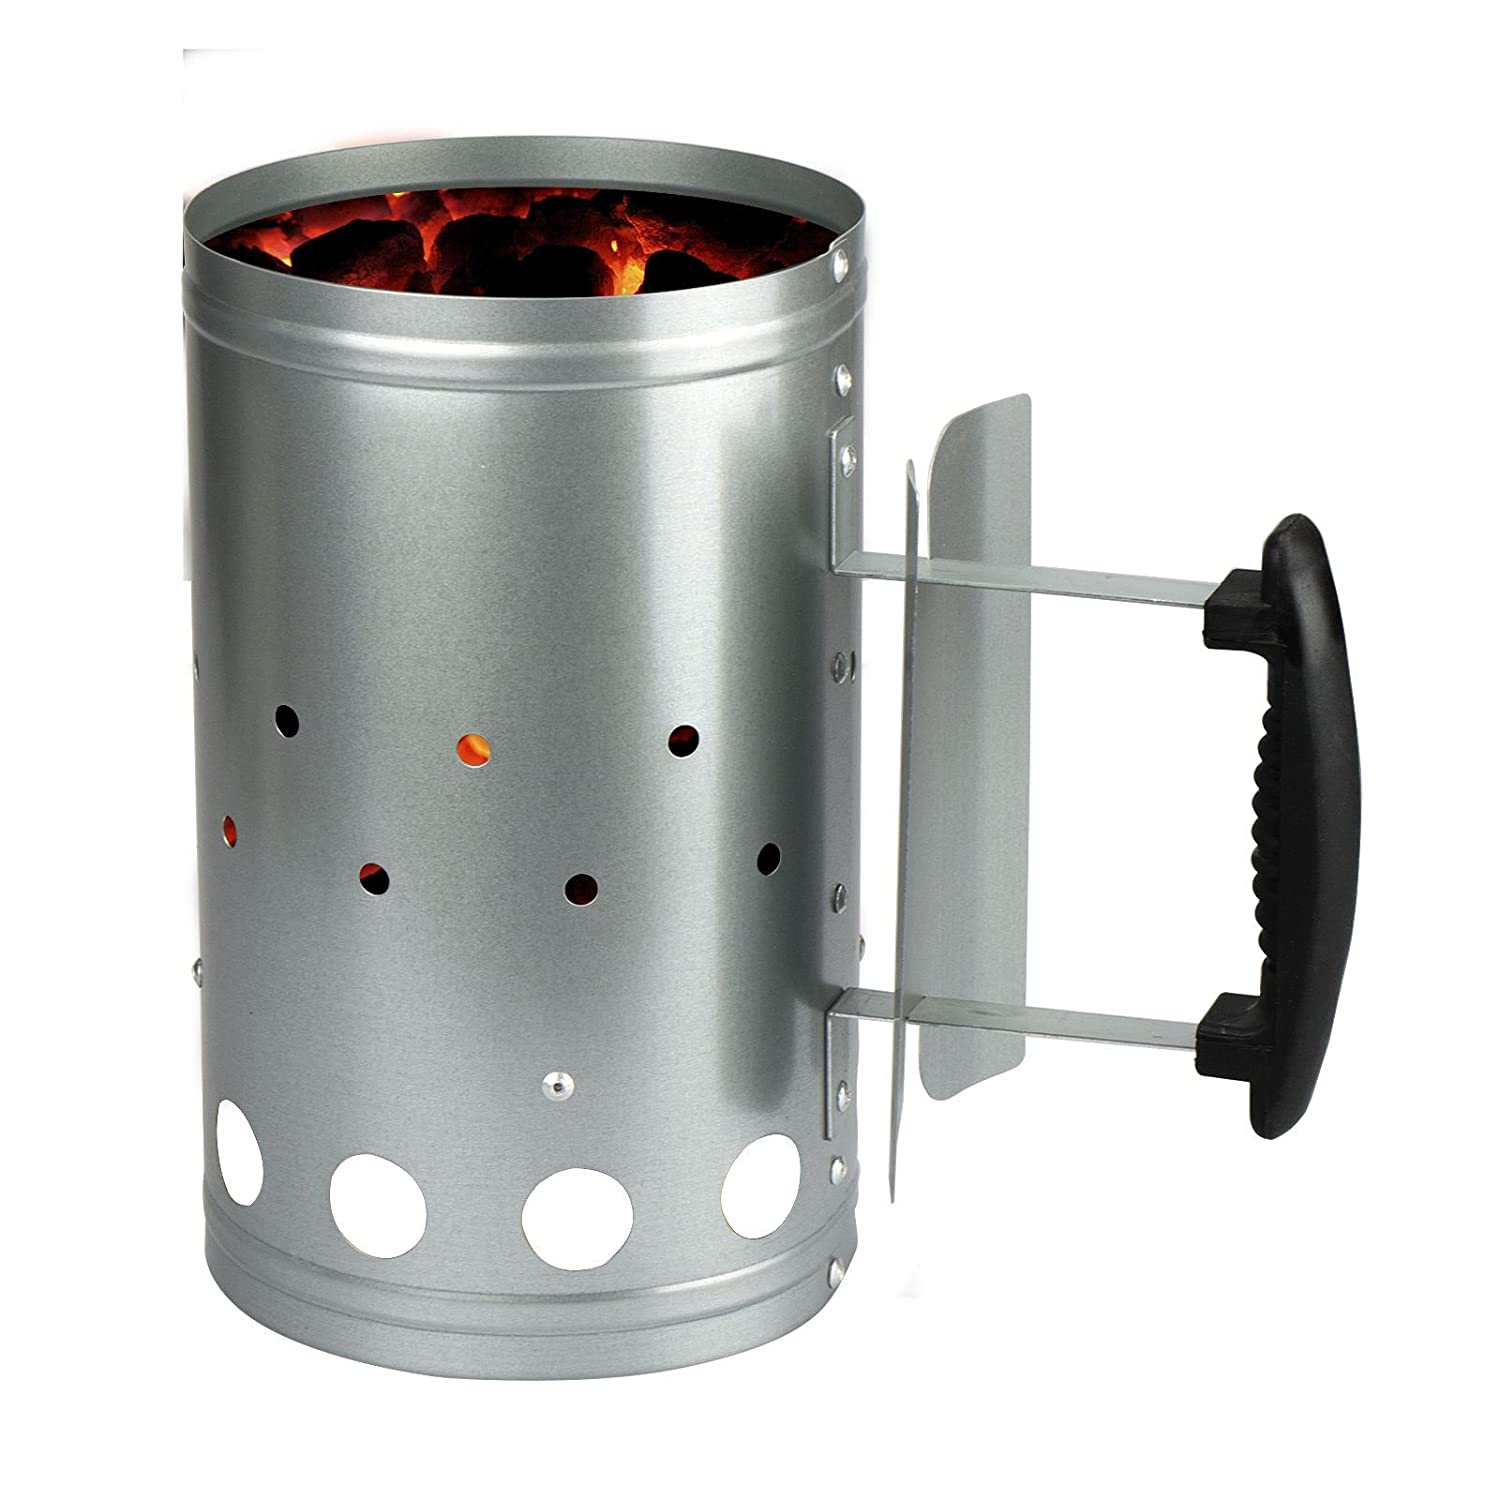 ASAB Barbecue BBQ Chimney Starter Quick Start Charcoal Burner Fire Lighter Coal Food Summer Garden Party (Medium)